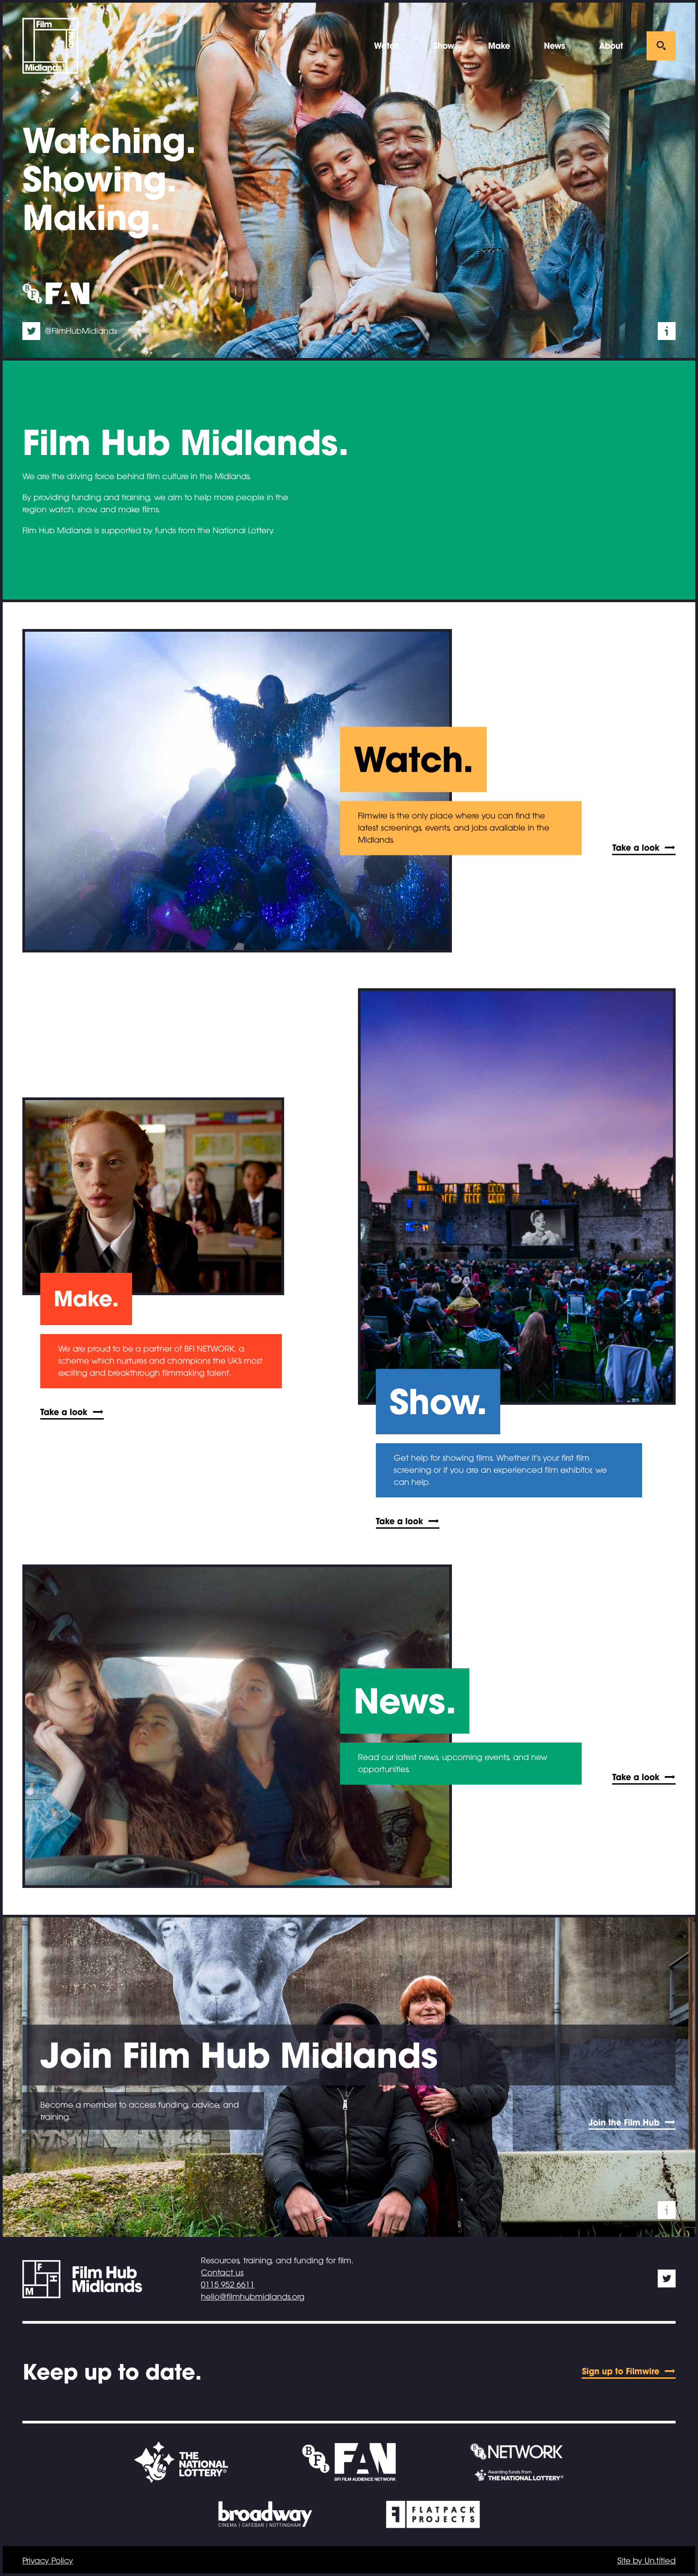 Screenshot of the Film Hub Midlands website